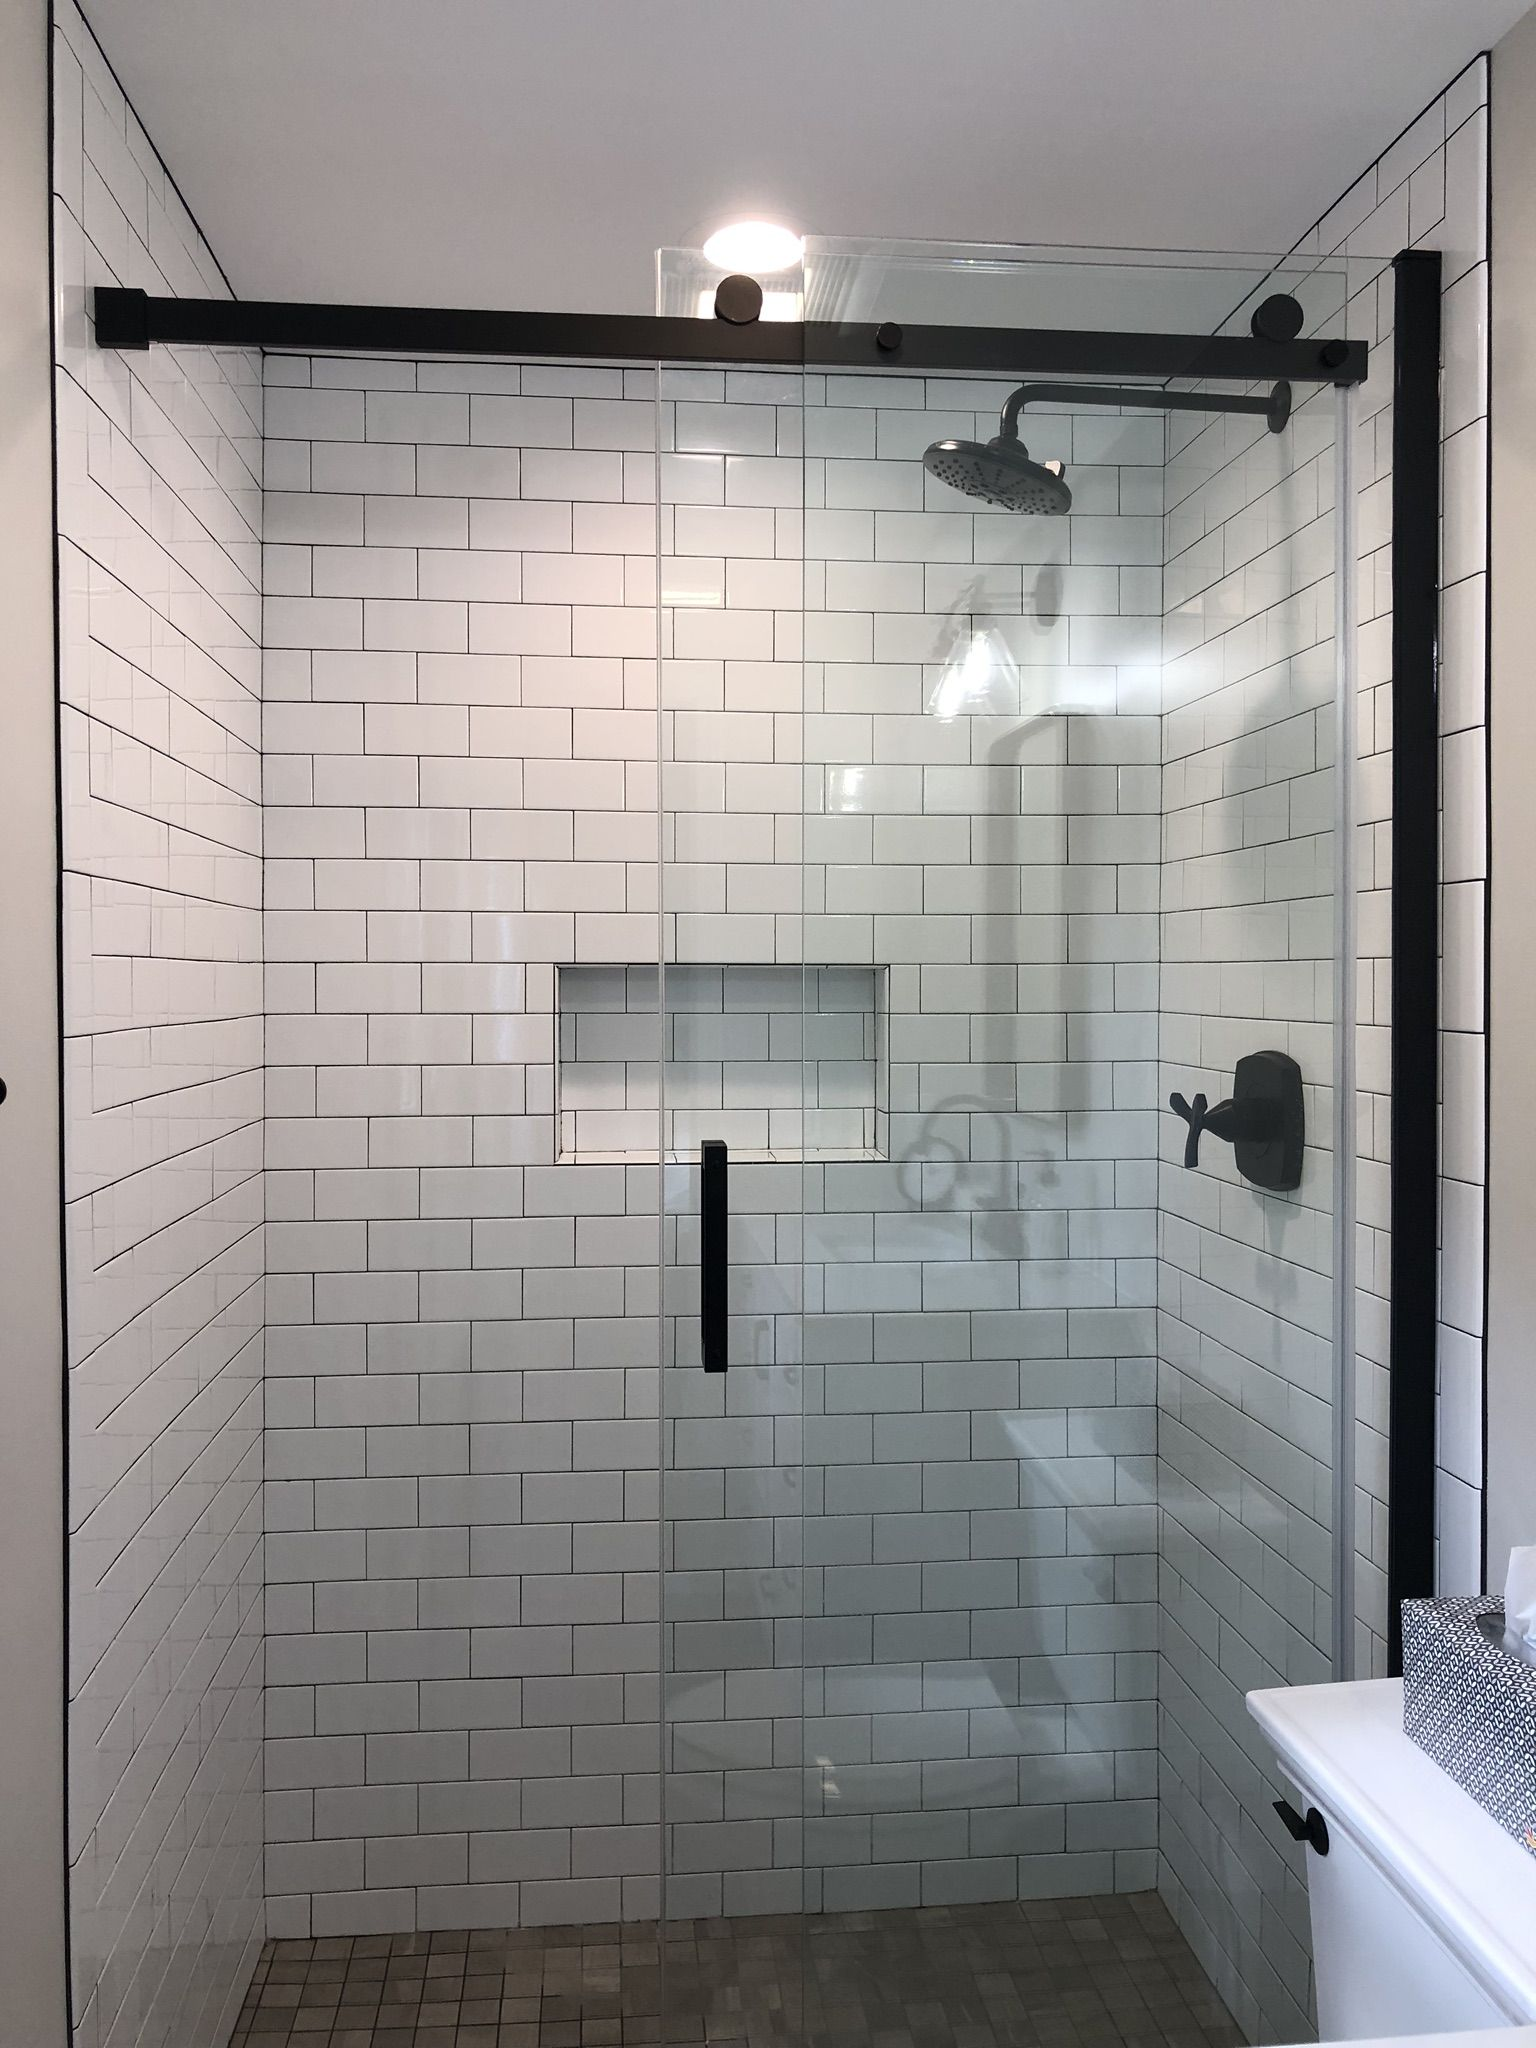 Tiled Walk In Shower Tile Walk In Shower White Subway Tile Shower Small Bathroom